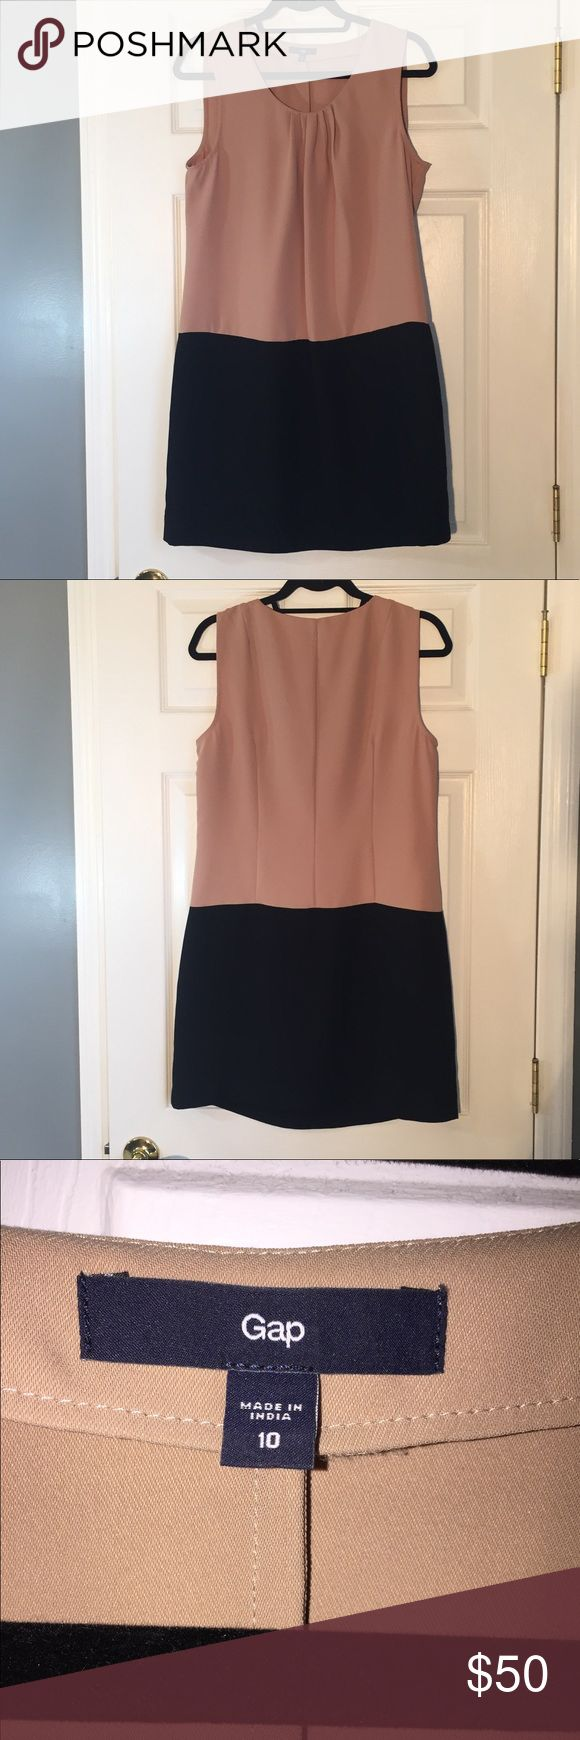 Gap Tan & Black Dress Gap tan and black colorblock sheath dress.  Sheath dress, colored blocked with tan and black makes it look like a drop waist.  Pleat detail at neckline, sleeveless, size 10.  Excellent condition! GAP Dresses